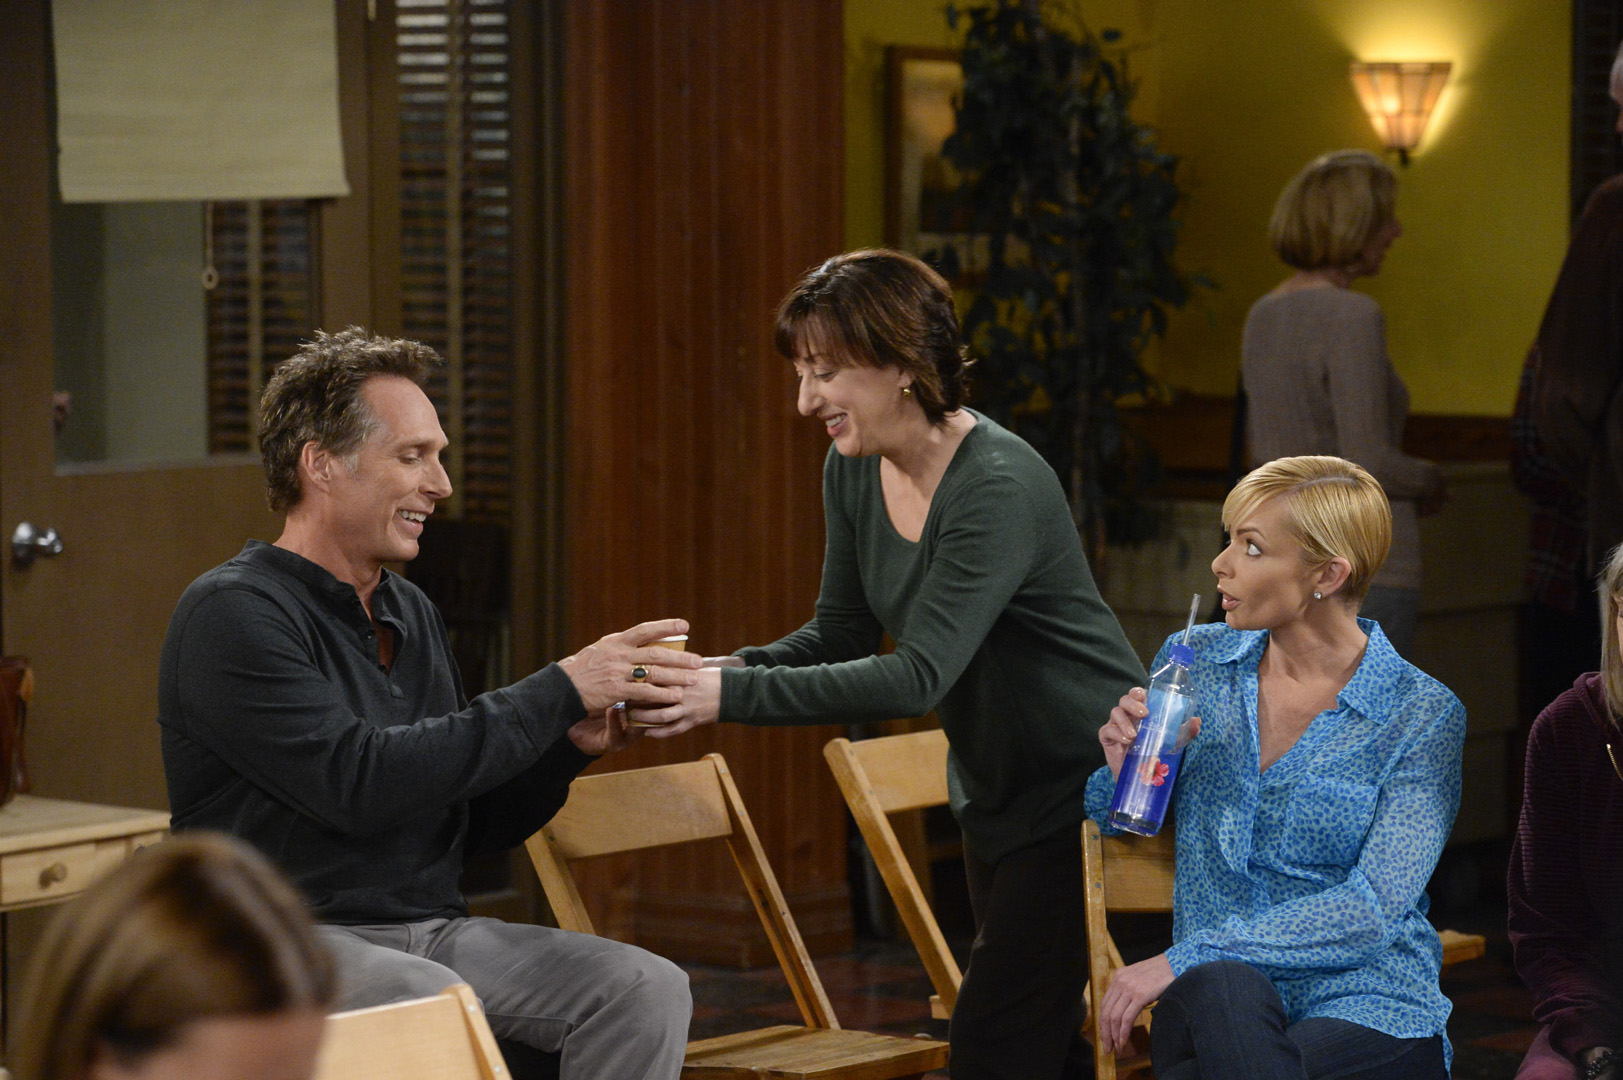 Wendy and Jill try to make Adam feel more comfortable at his first meeting.